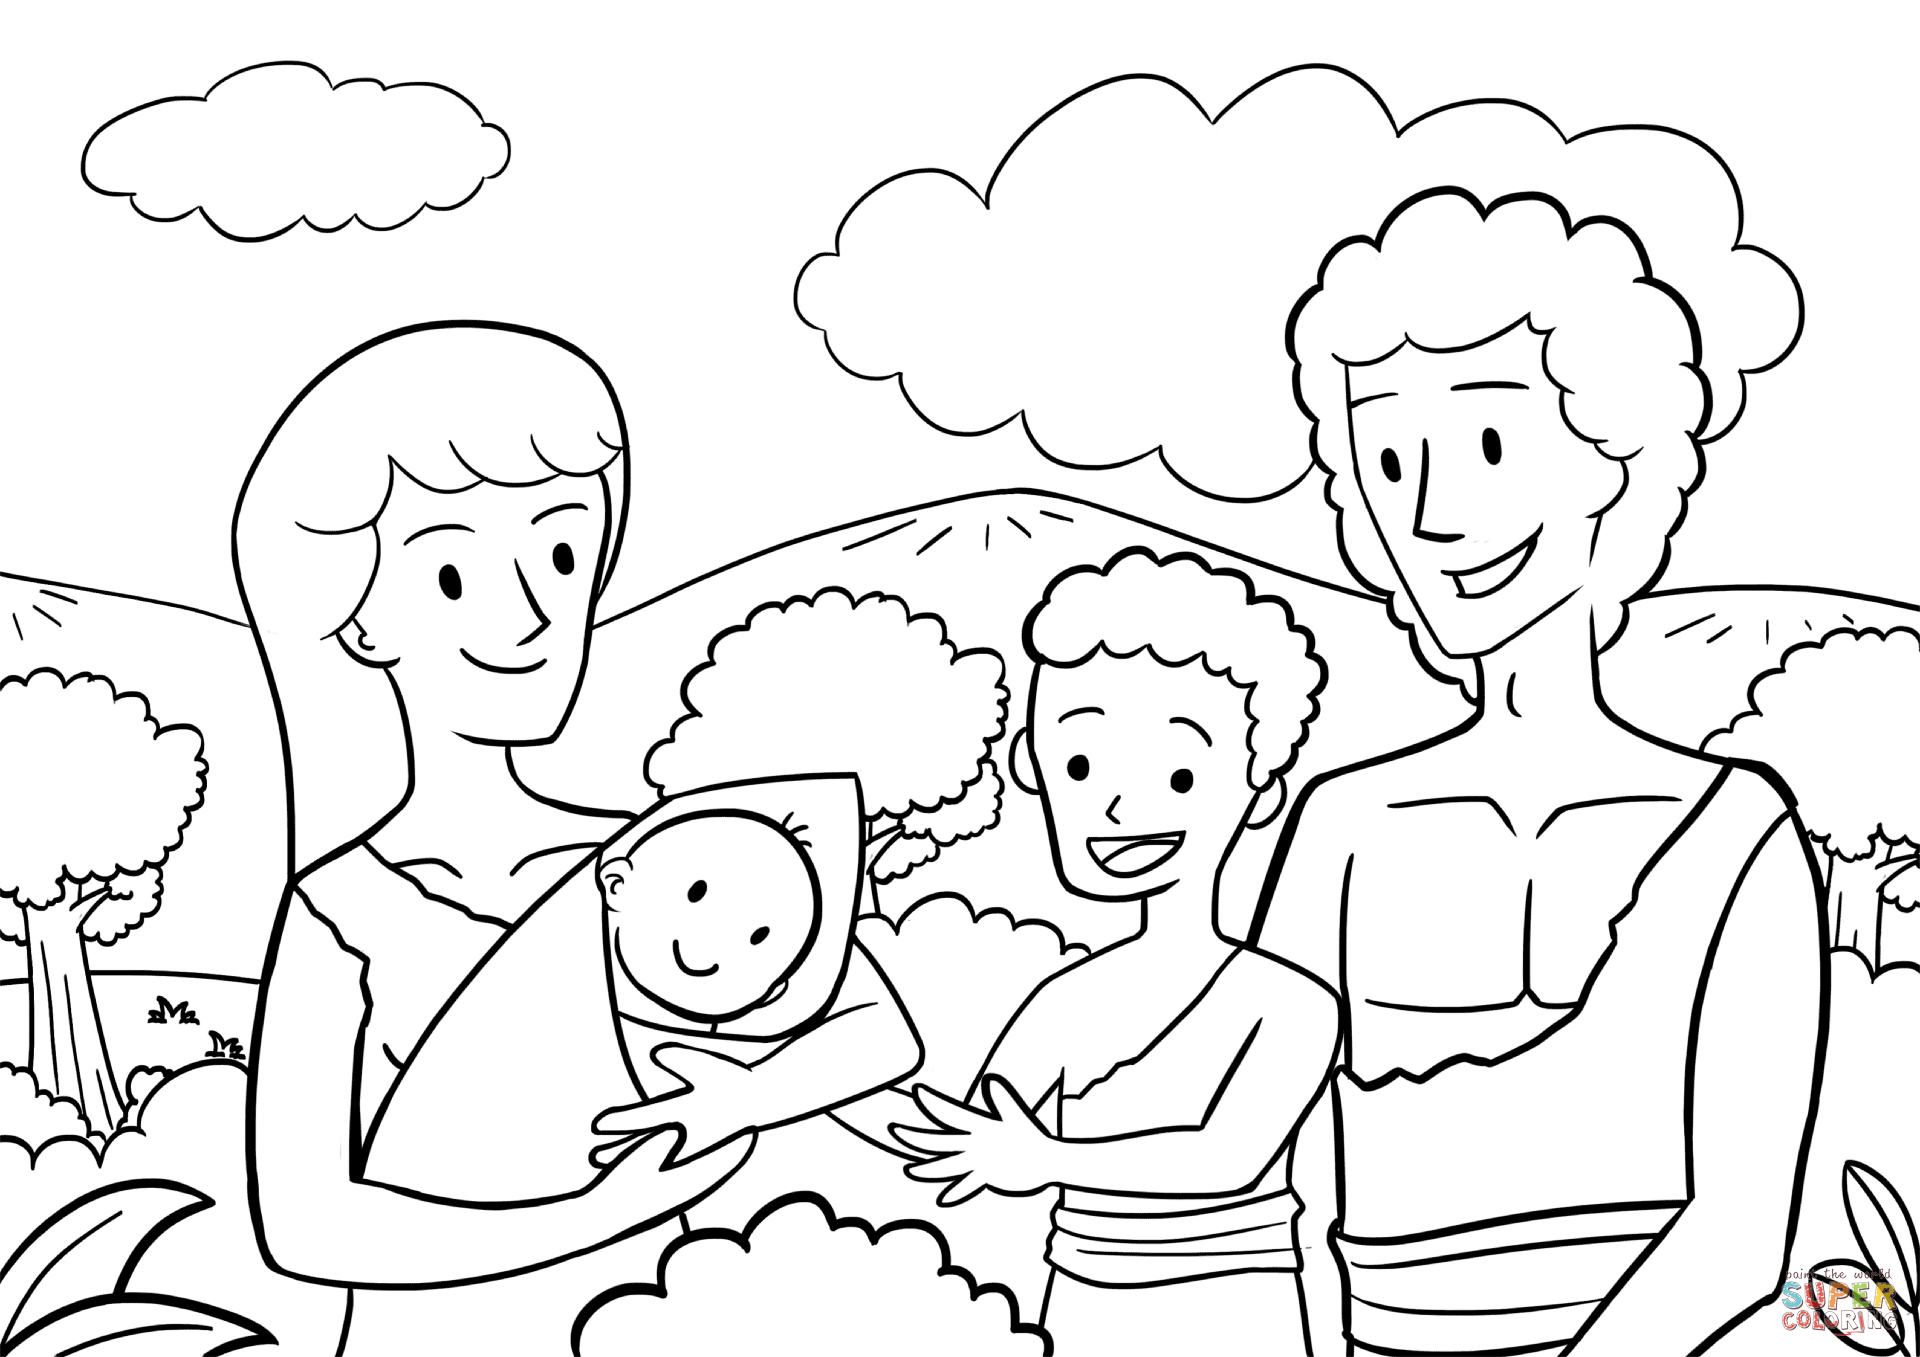 coloring page adam and eve picture of adam and eve in the garden of eden to color page adam and coloring eve